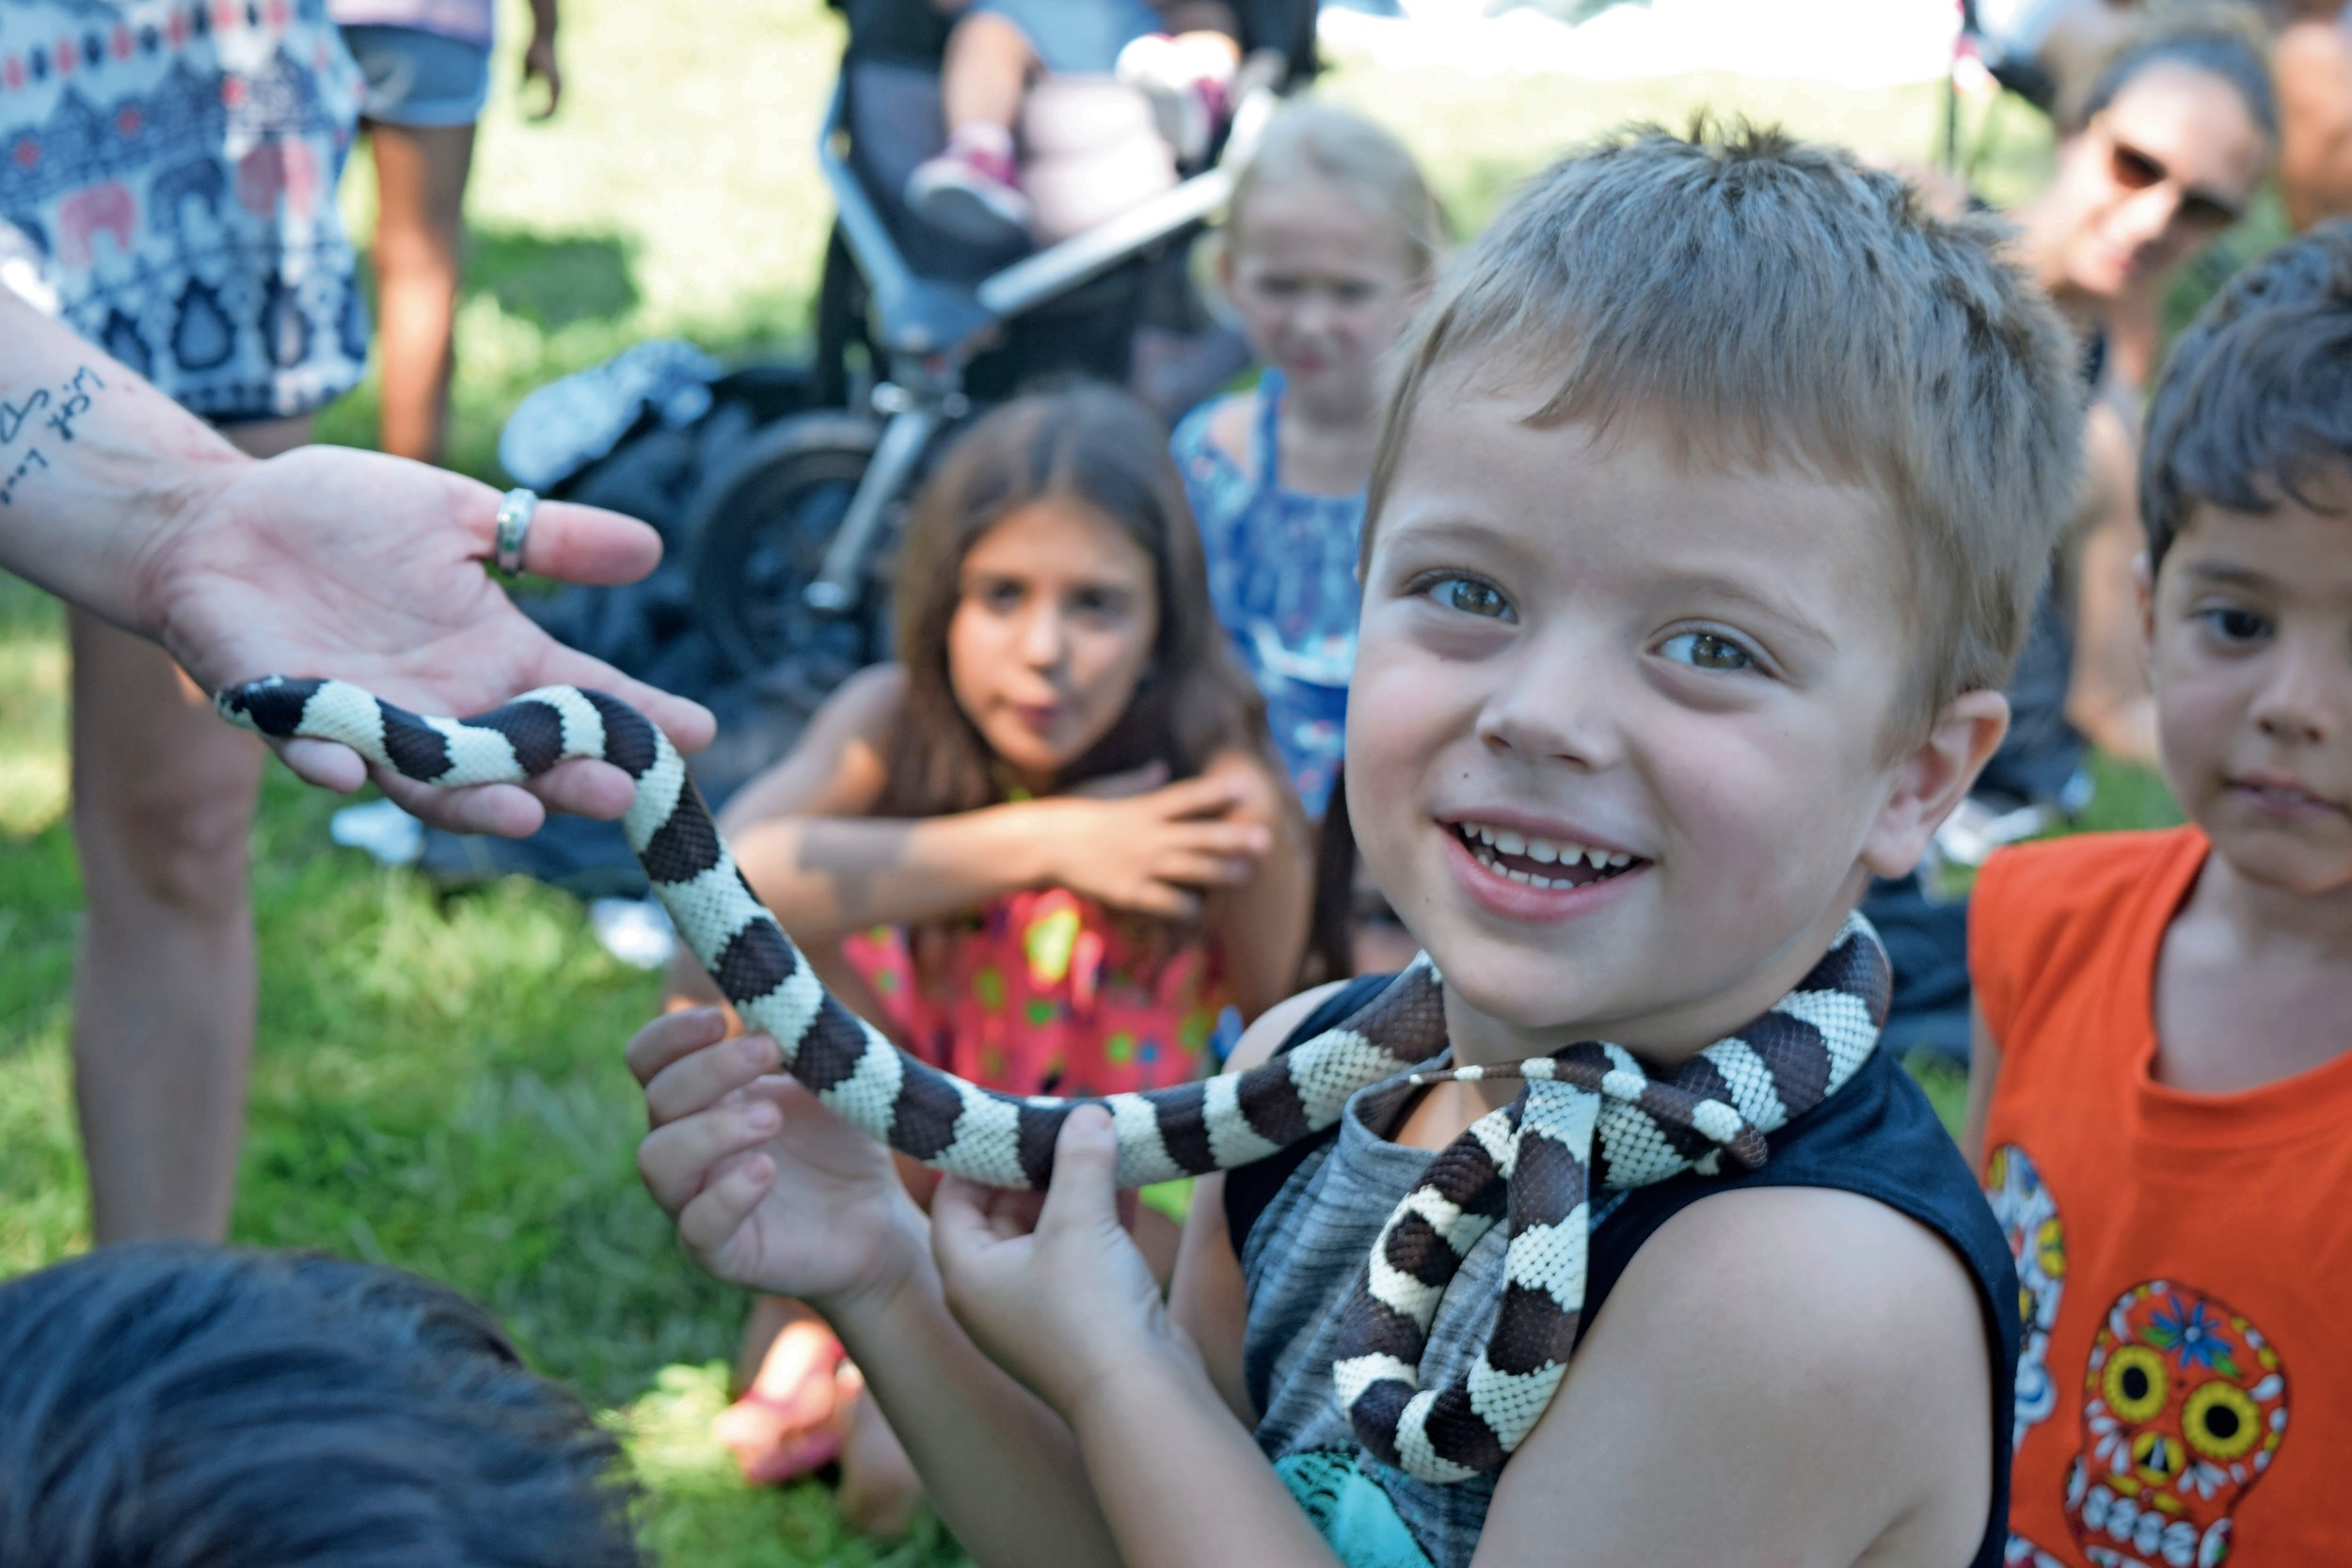 Aidan Mackey, 4, made a slithery new friend at the Town of Hempstead's Petland Parties program at Forest City Park on Aug. 1.